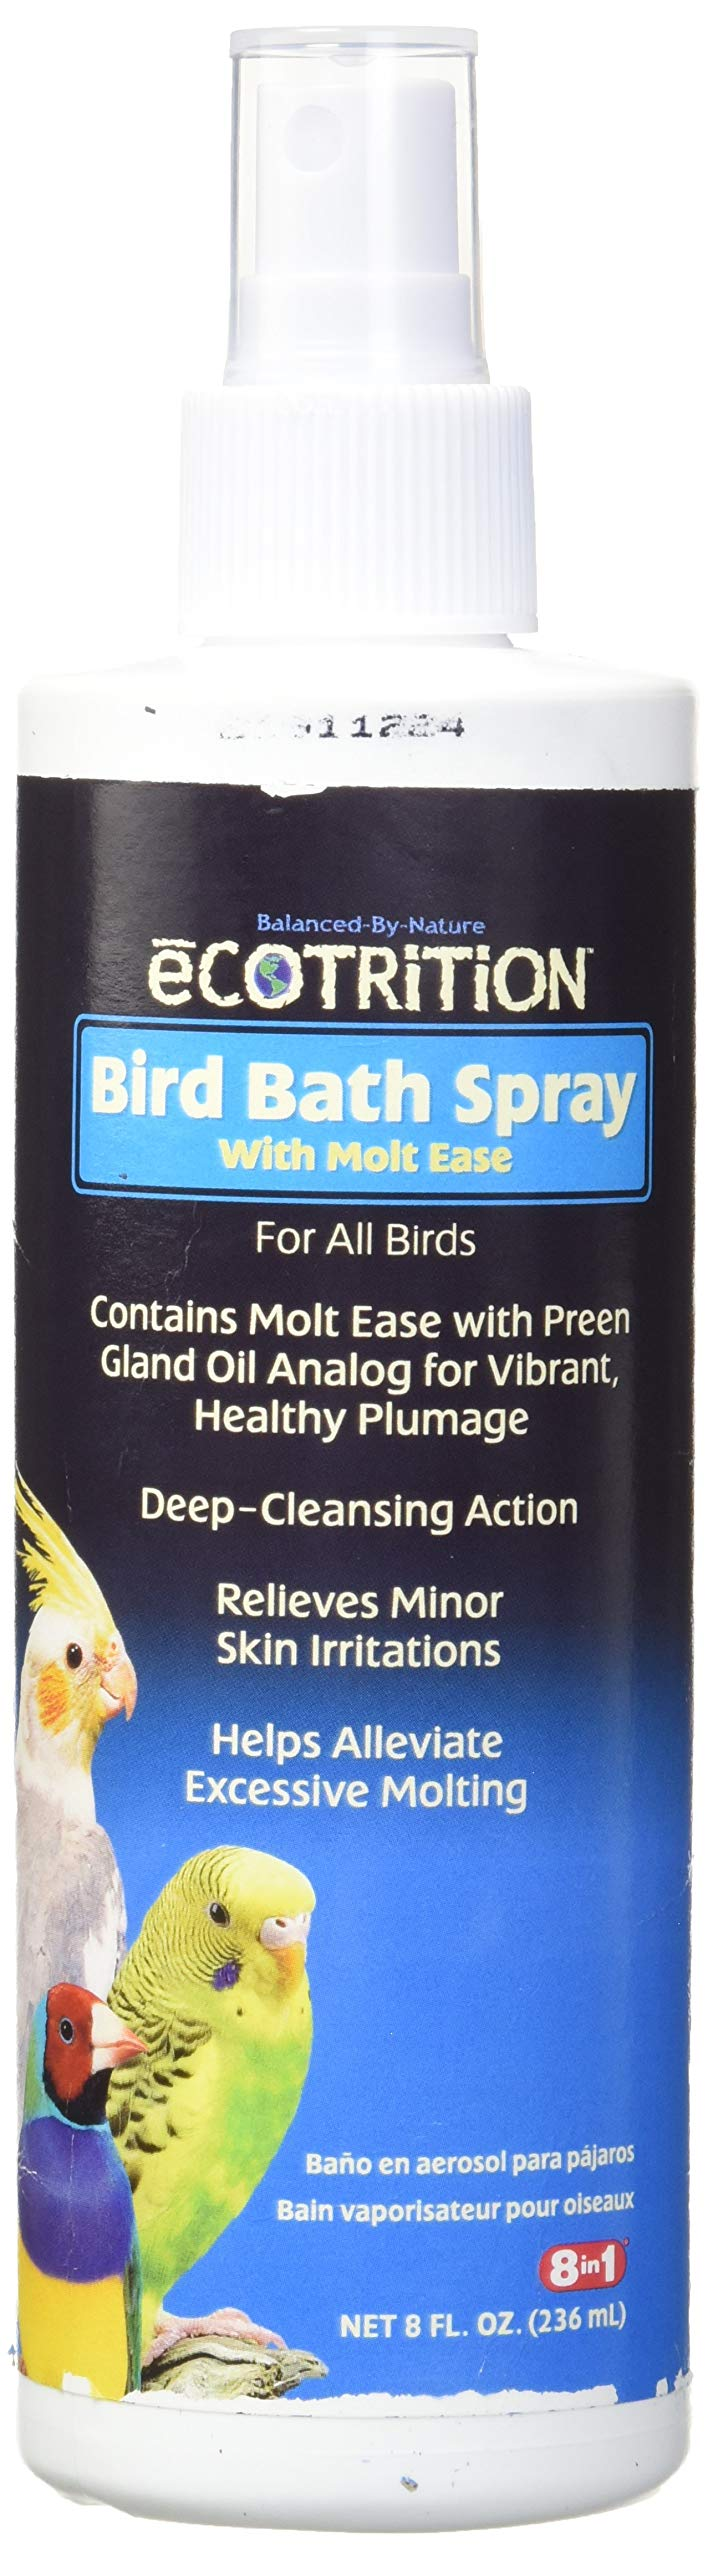 8 In 1 Pet Products BEOD141001 Ecotrition Bird Bath Spray, 8-Ounce